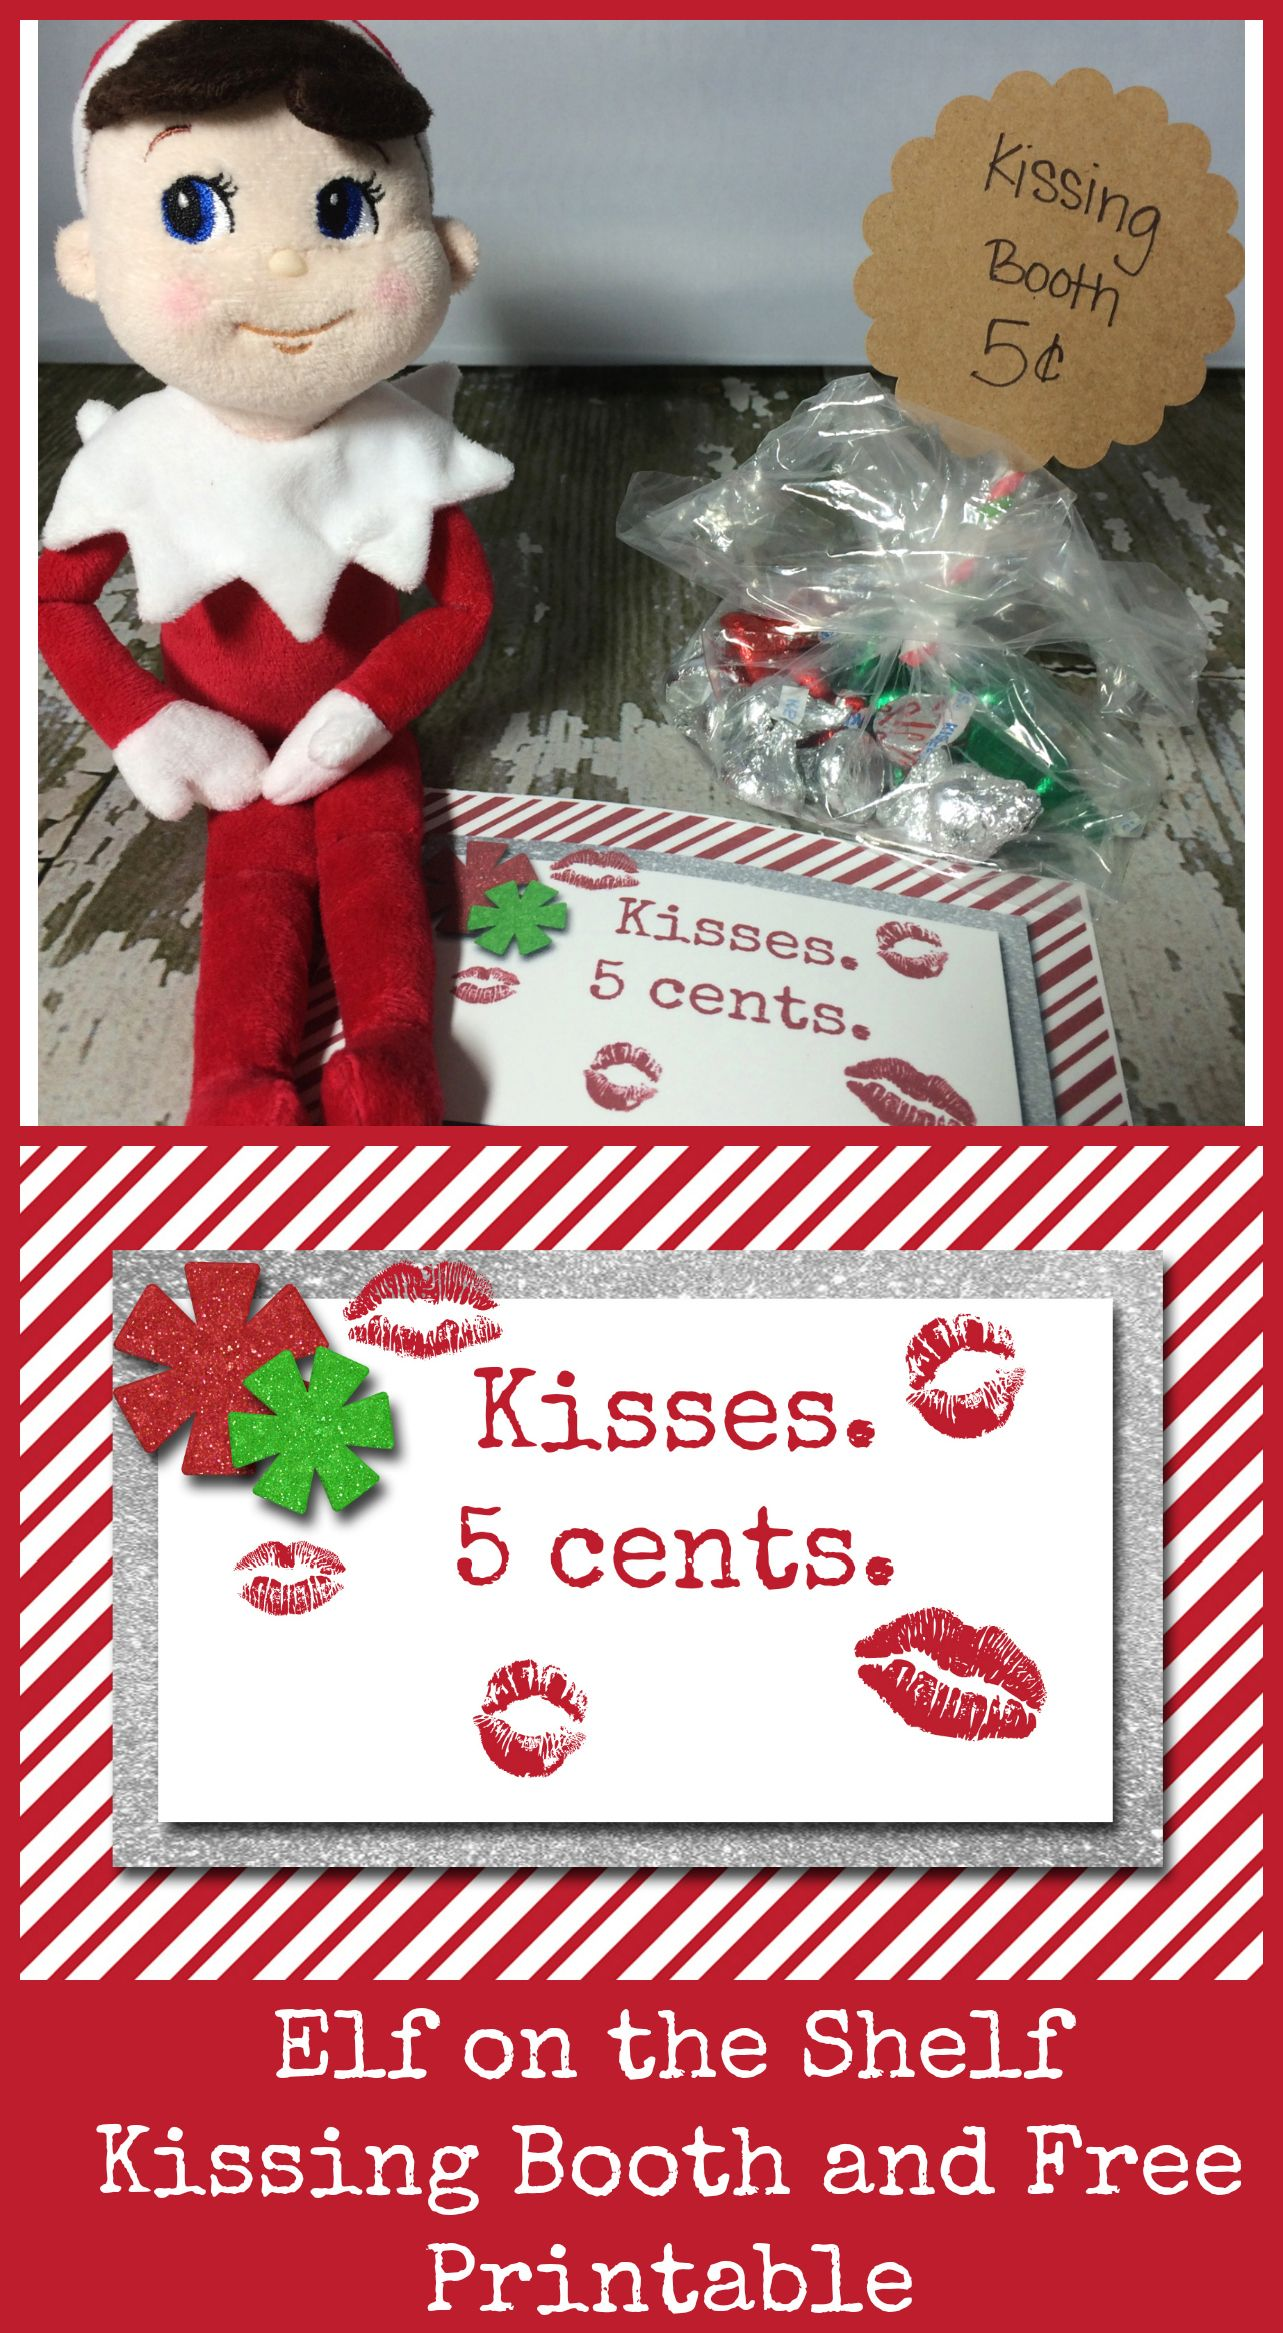 photograph about Elf on the Shelf Kissing Booth Free Printable named 10 Very simple Elf Upon The Shelf Recommendations and a everyday Printable Ideal